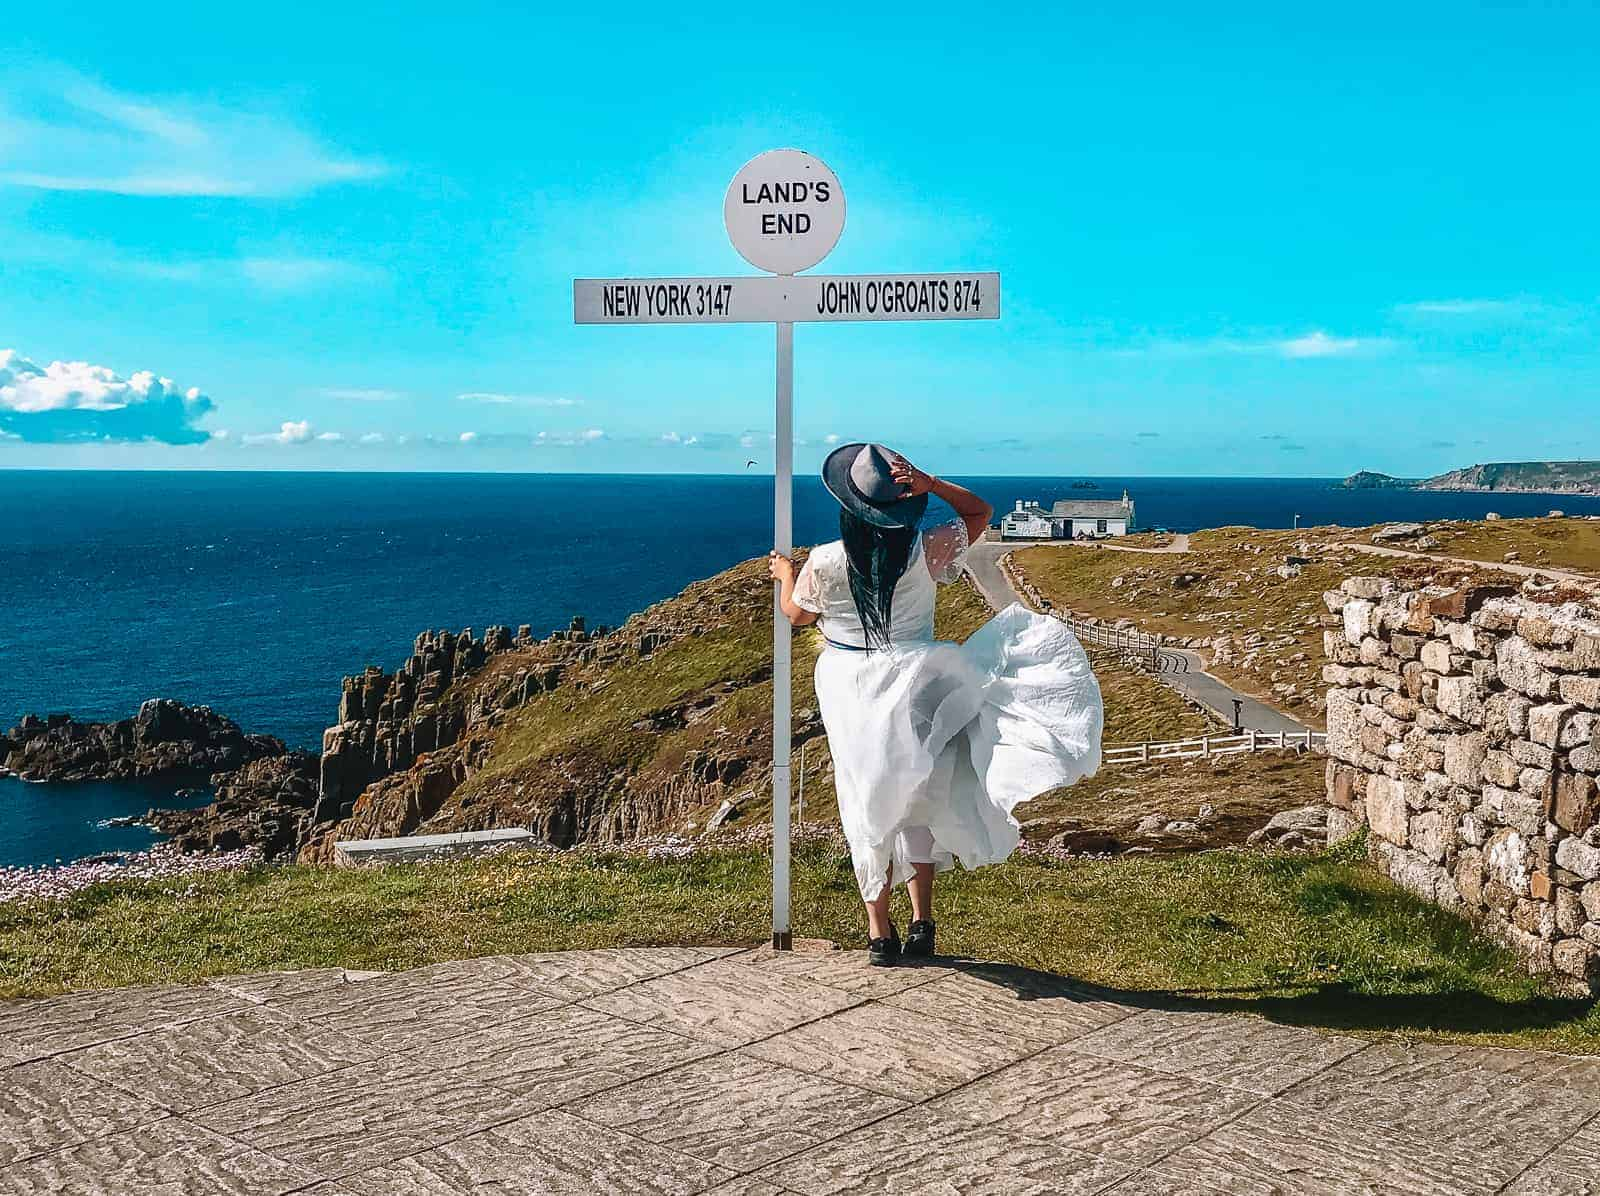 Things to do in Land's End Cornwall | Lands End sign